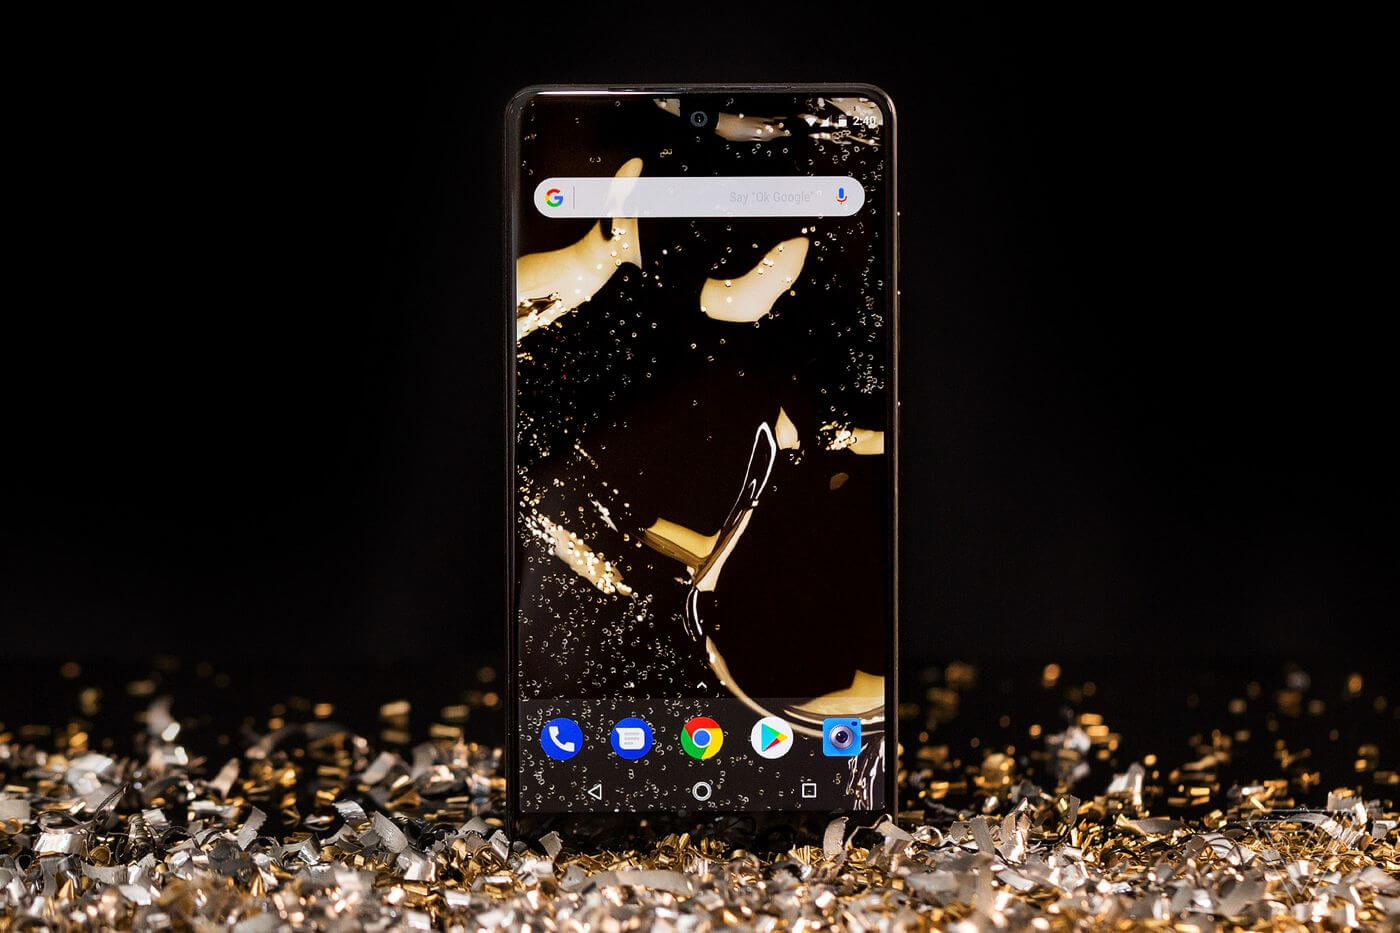 Only 88000 units of the Essential Phone were sold in 2017